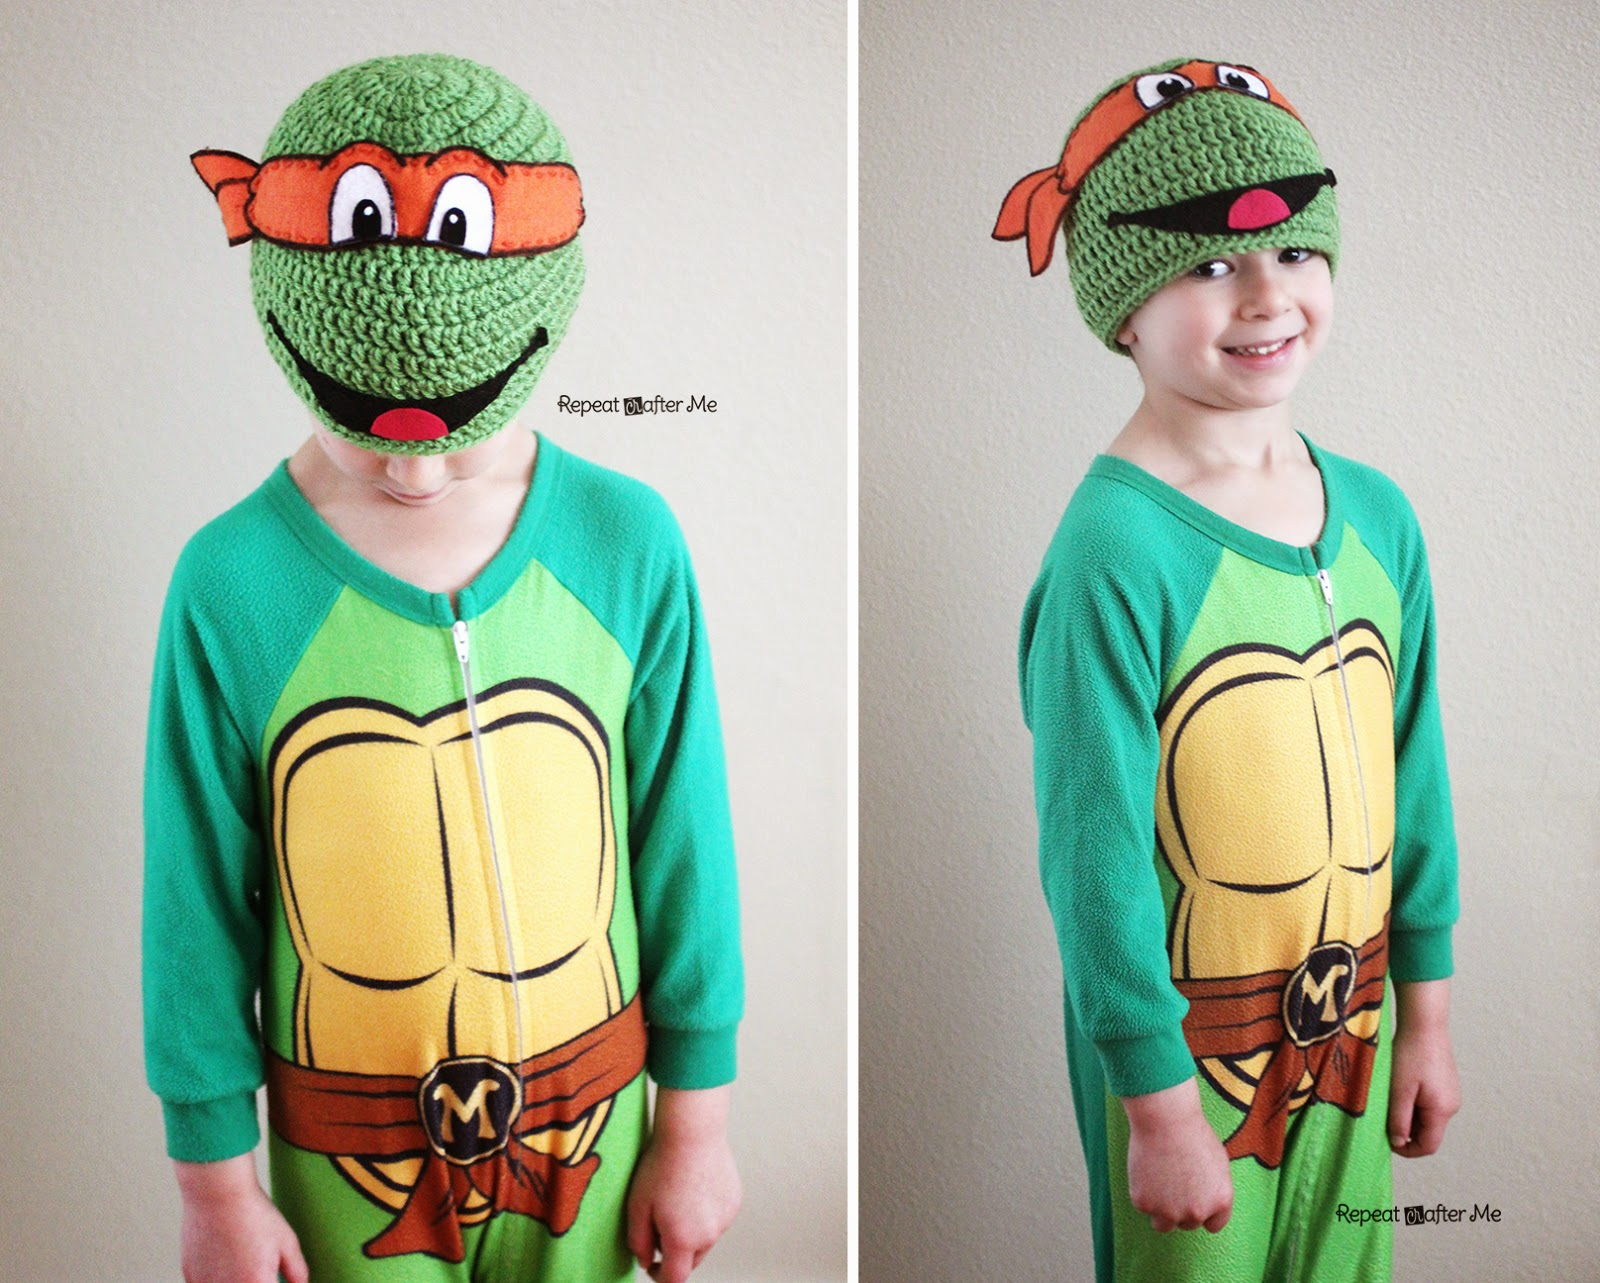 Free Crochet Patterns For Ninja Turtle Hat : Repeat Crafter Me: Crochet Ninja Turtle Hat Pattern